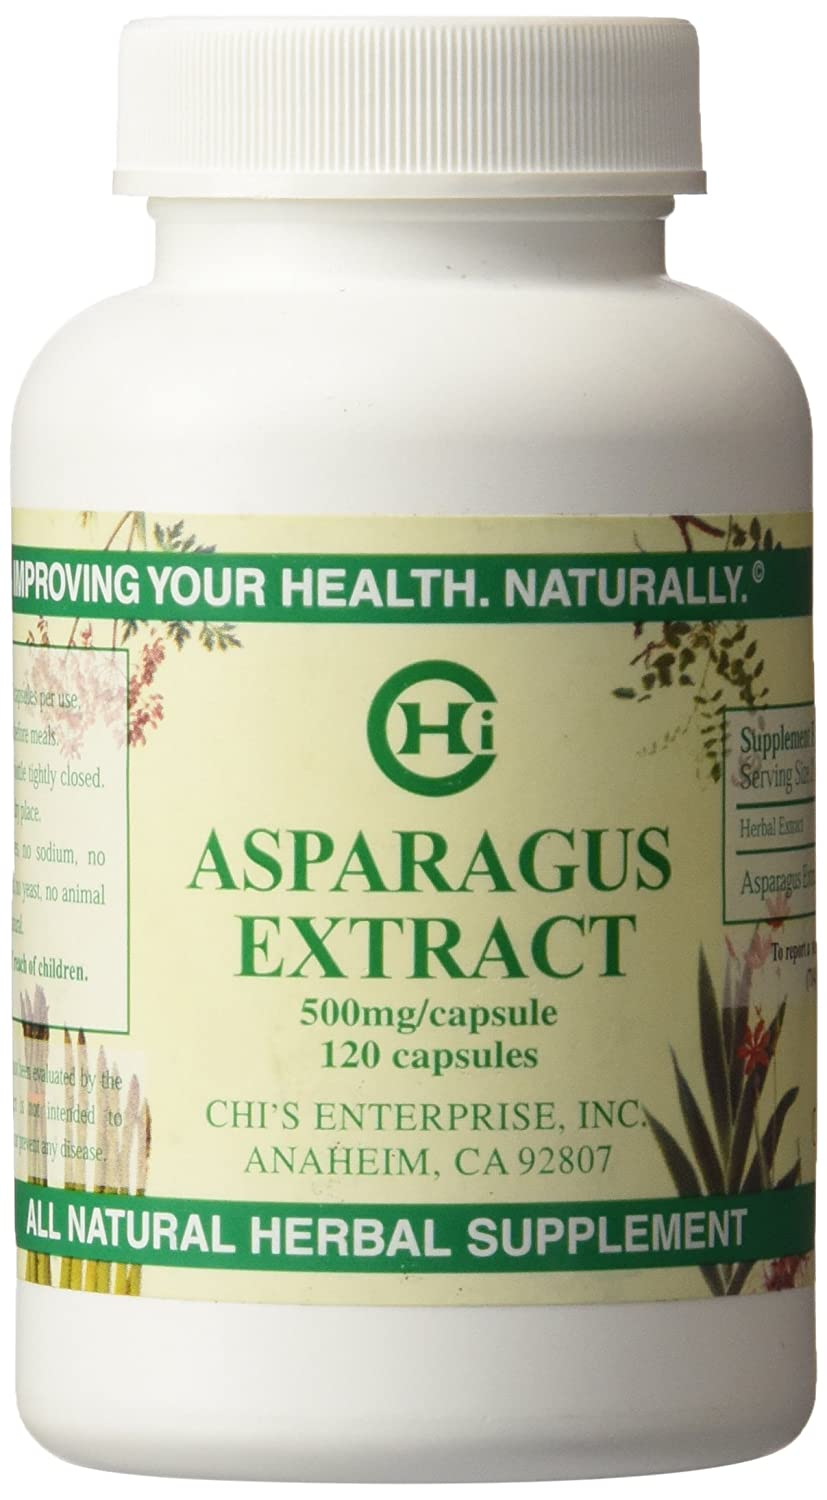 Asparagus Extract 120 Caps by chi-enterprise